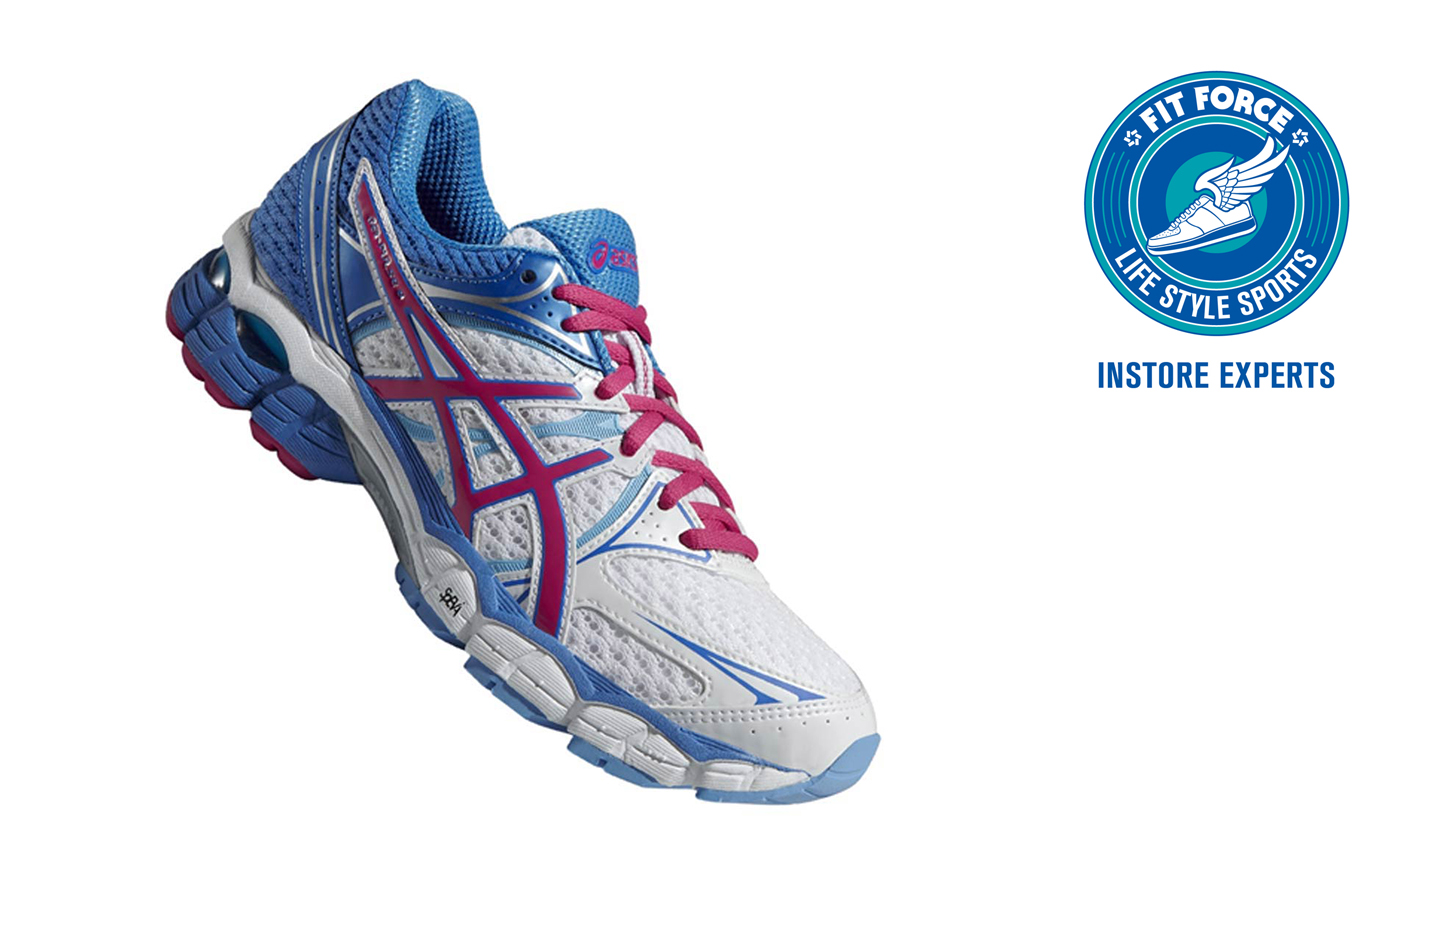 FIT FORCE PRODUCT REVIEWS: ASICS GEL PULSE